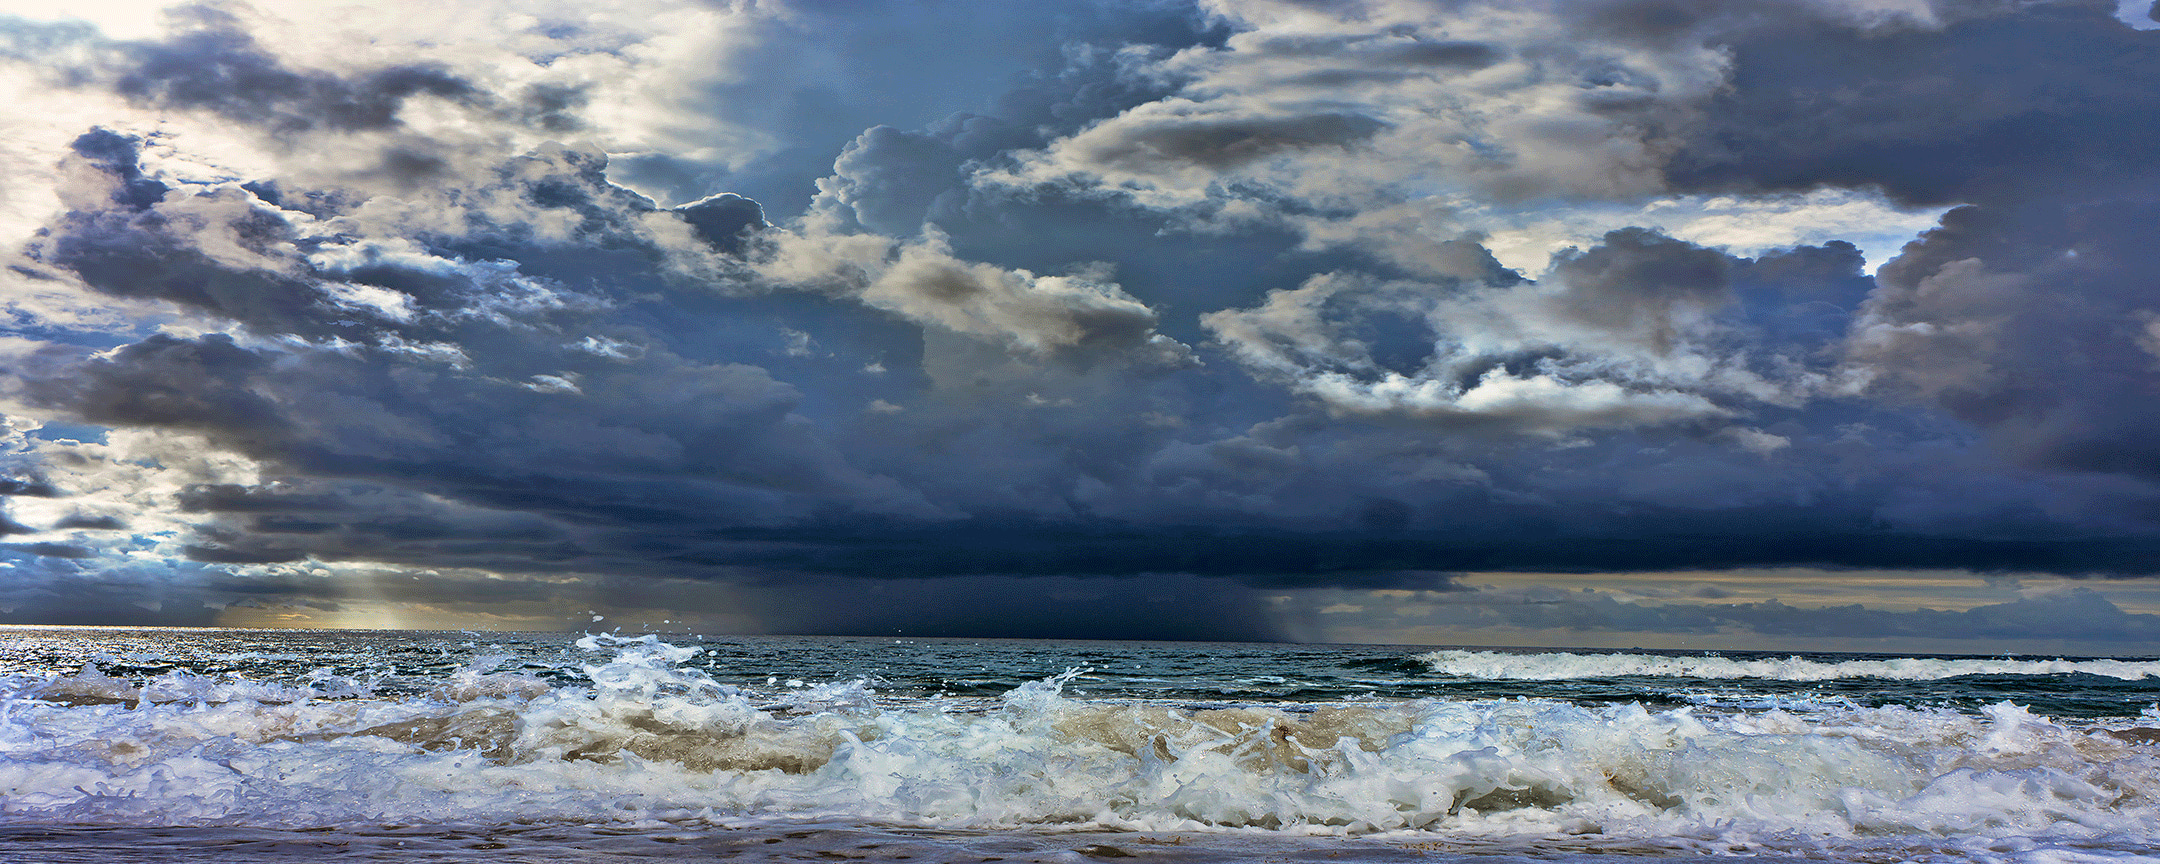 <div class='title'>           STORM ON THE HORIZON (for BANNER)         </div>